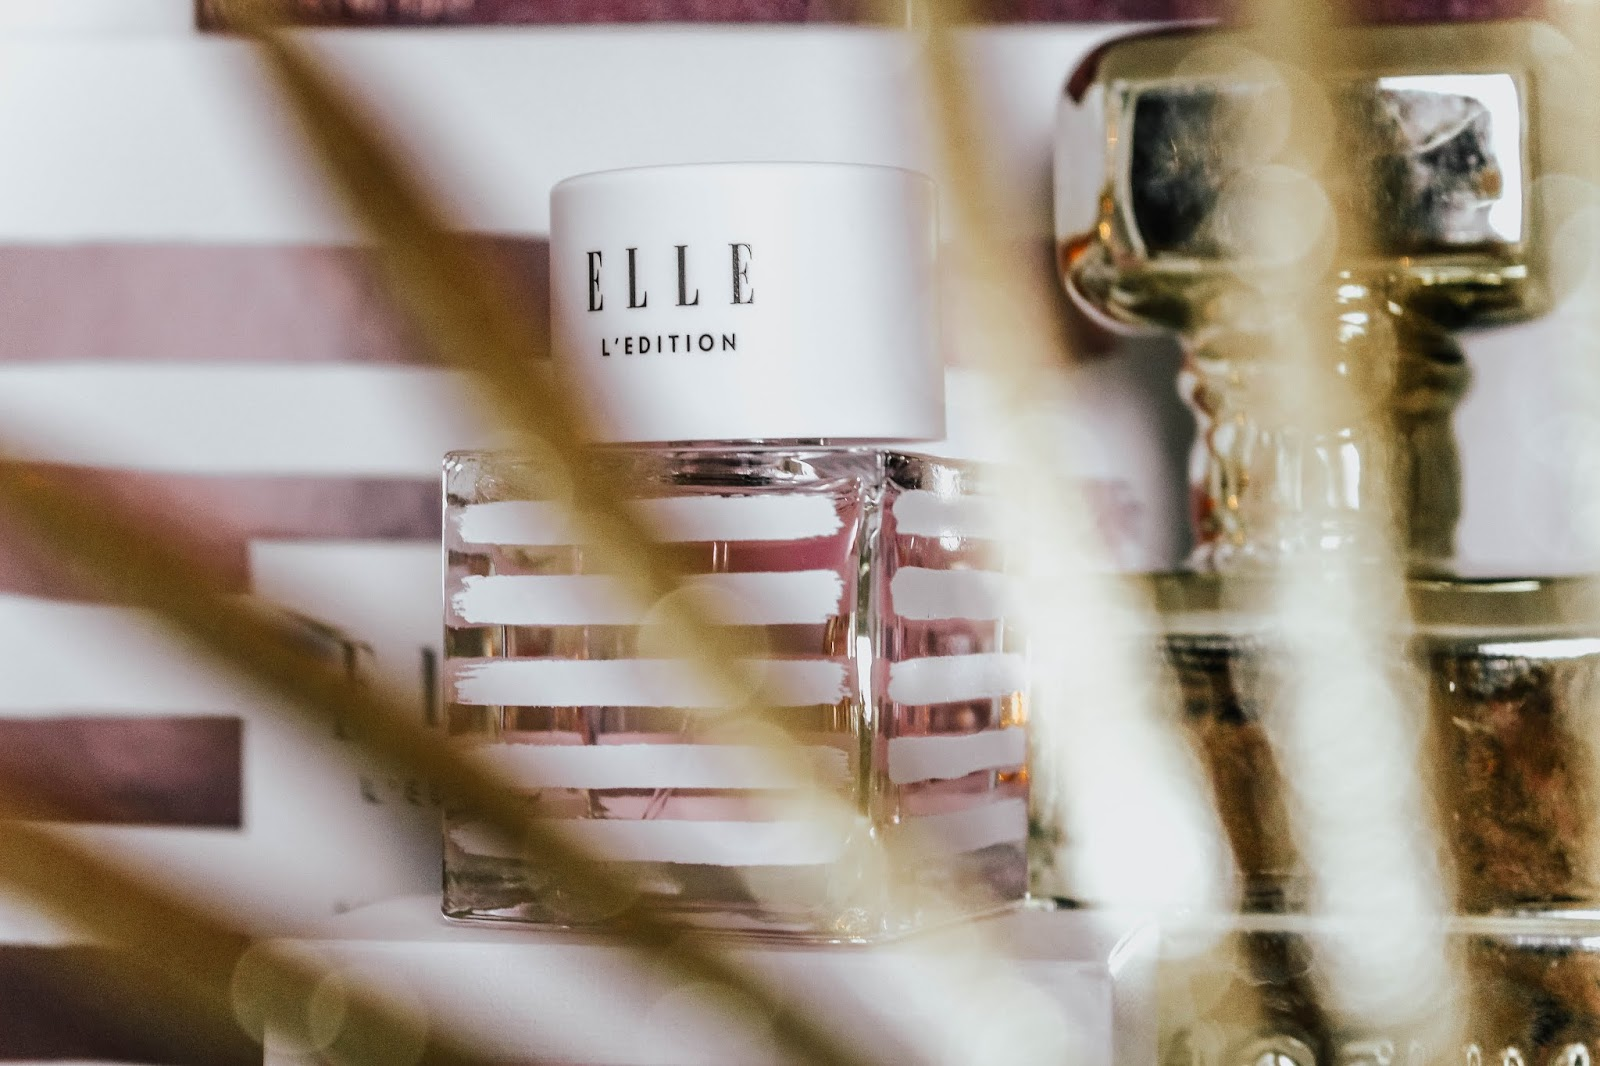 Elle L'Edition Eau de Parfum 50ml Beauty Blog Review